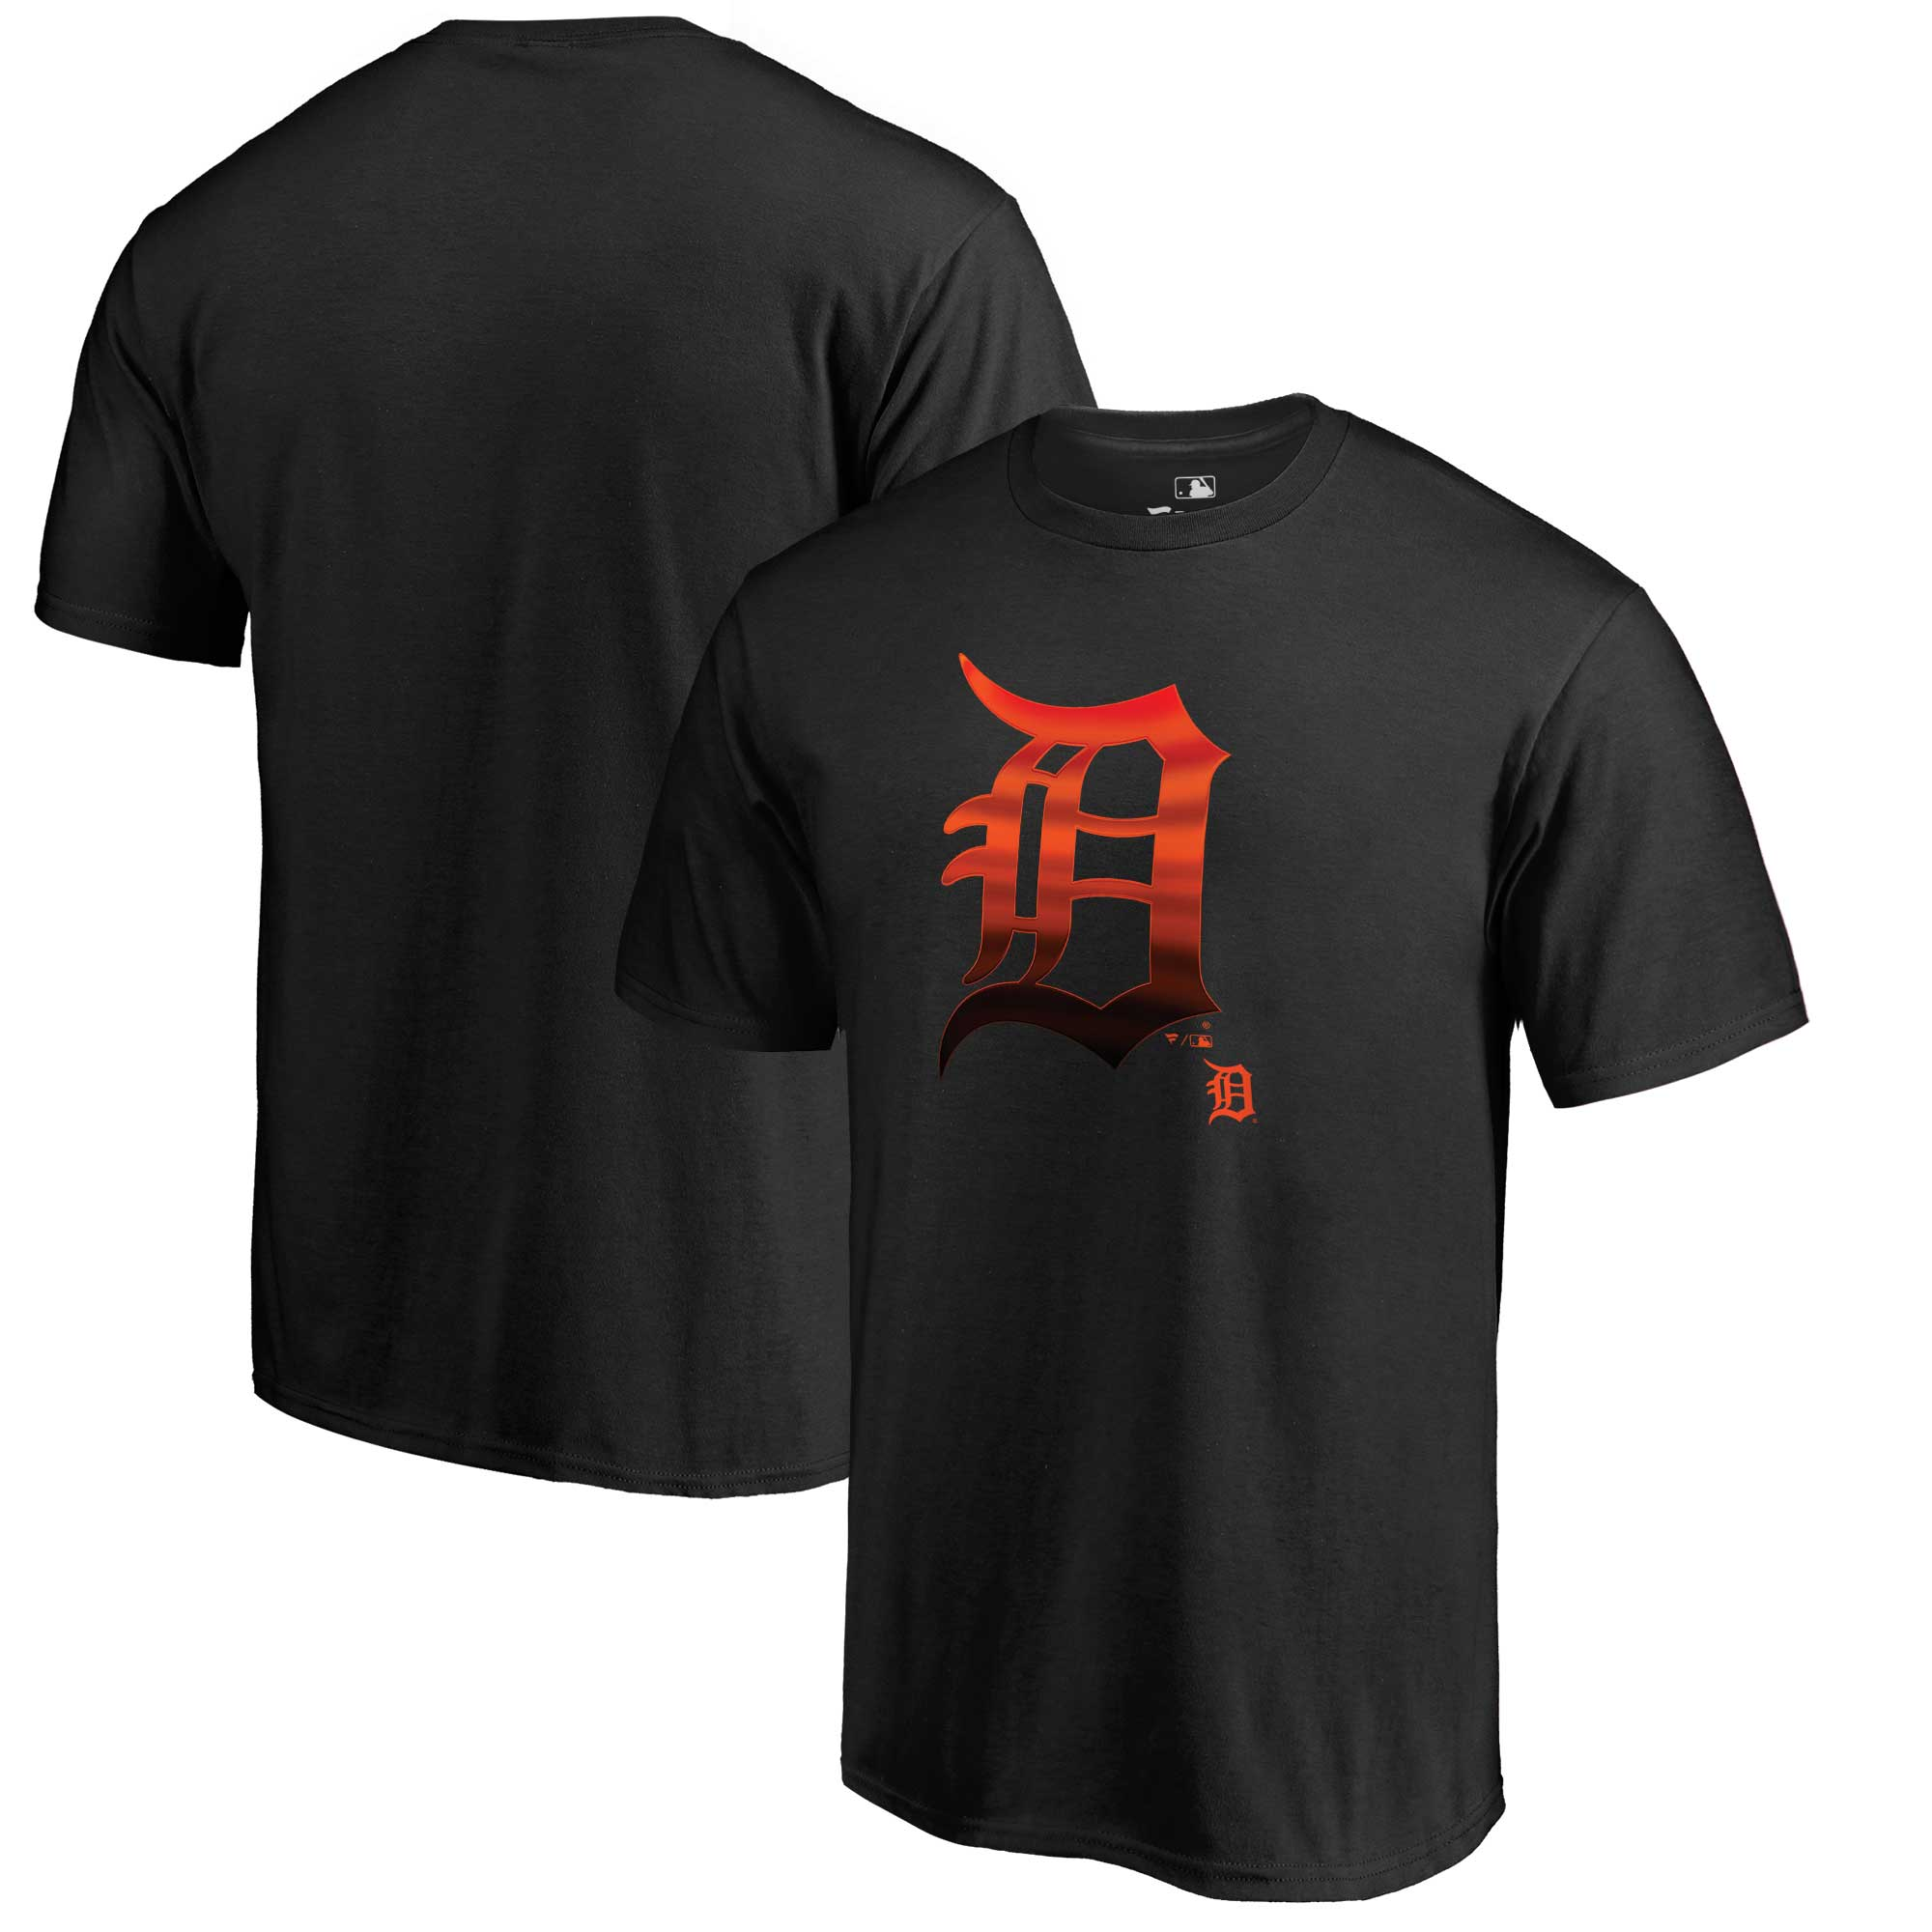 Detroit Tigers Fanatics Branded Midnight Mascot T-Shirt - Black